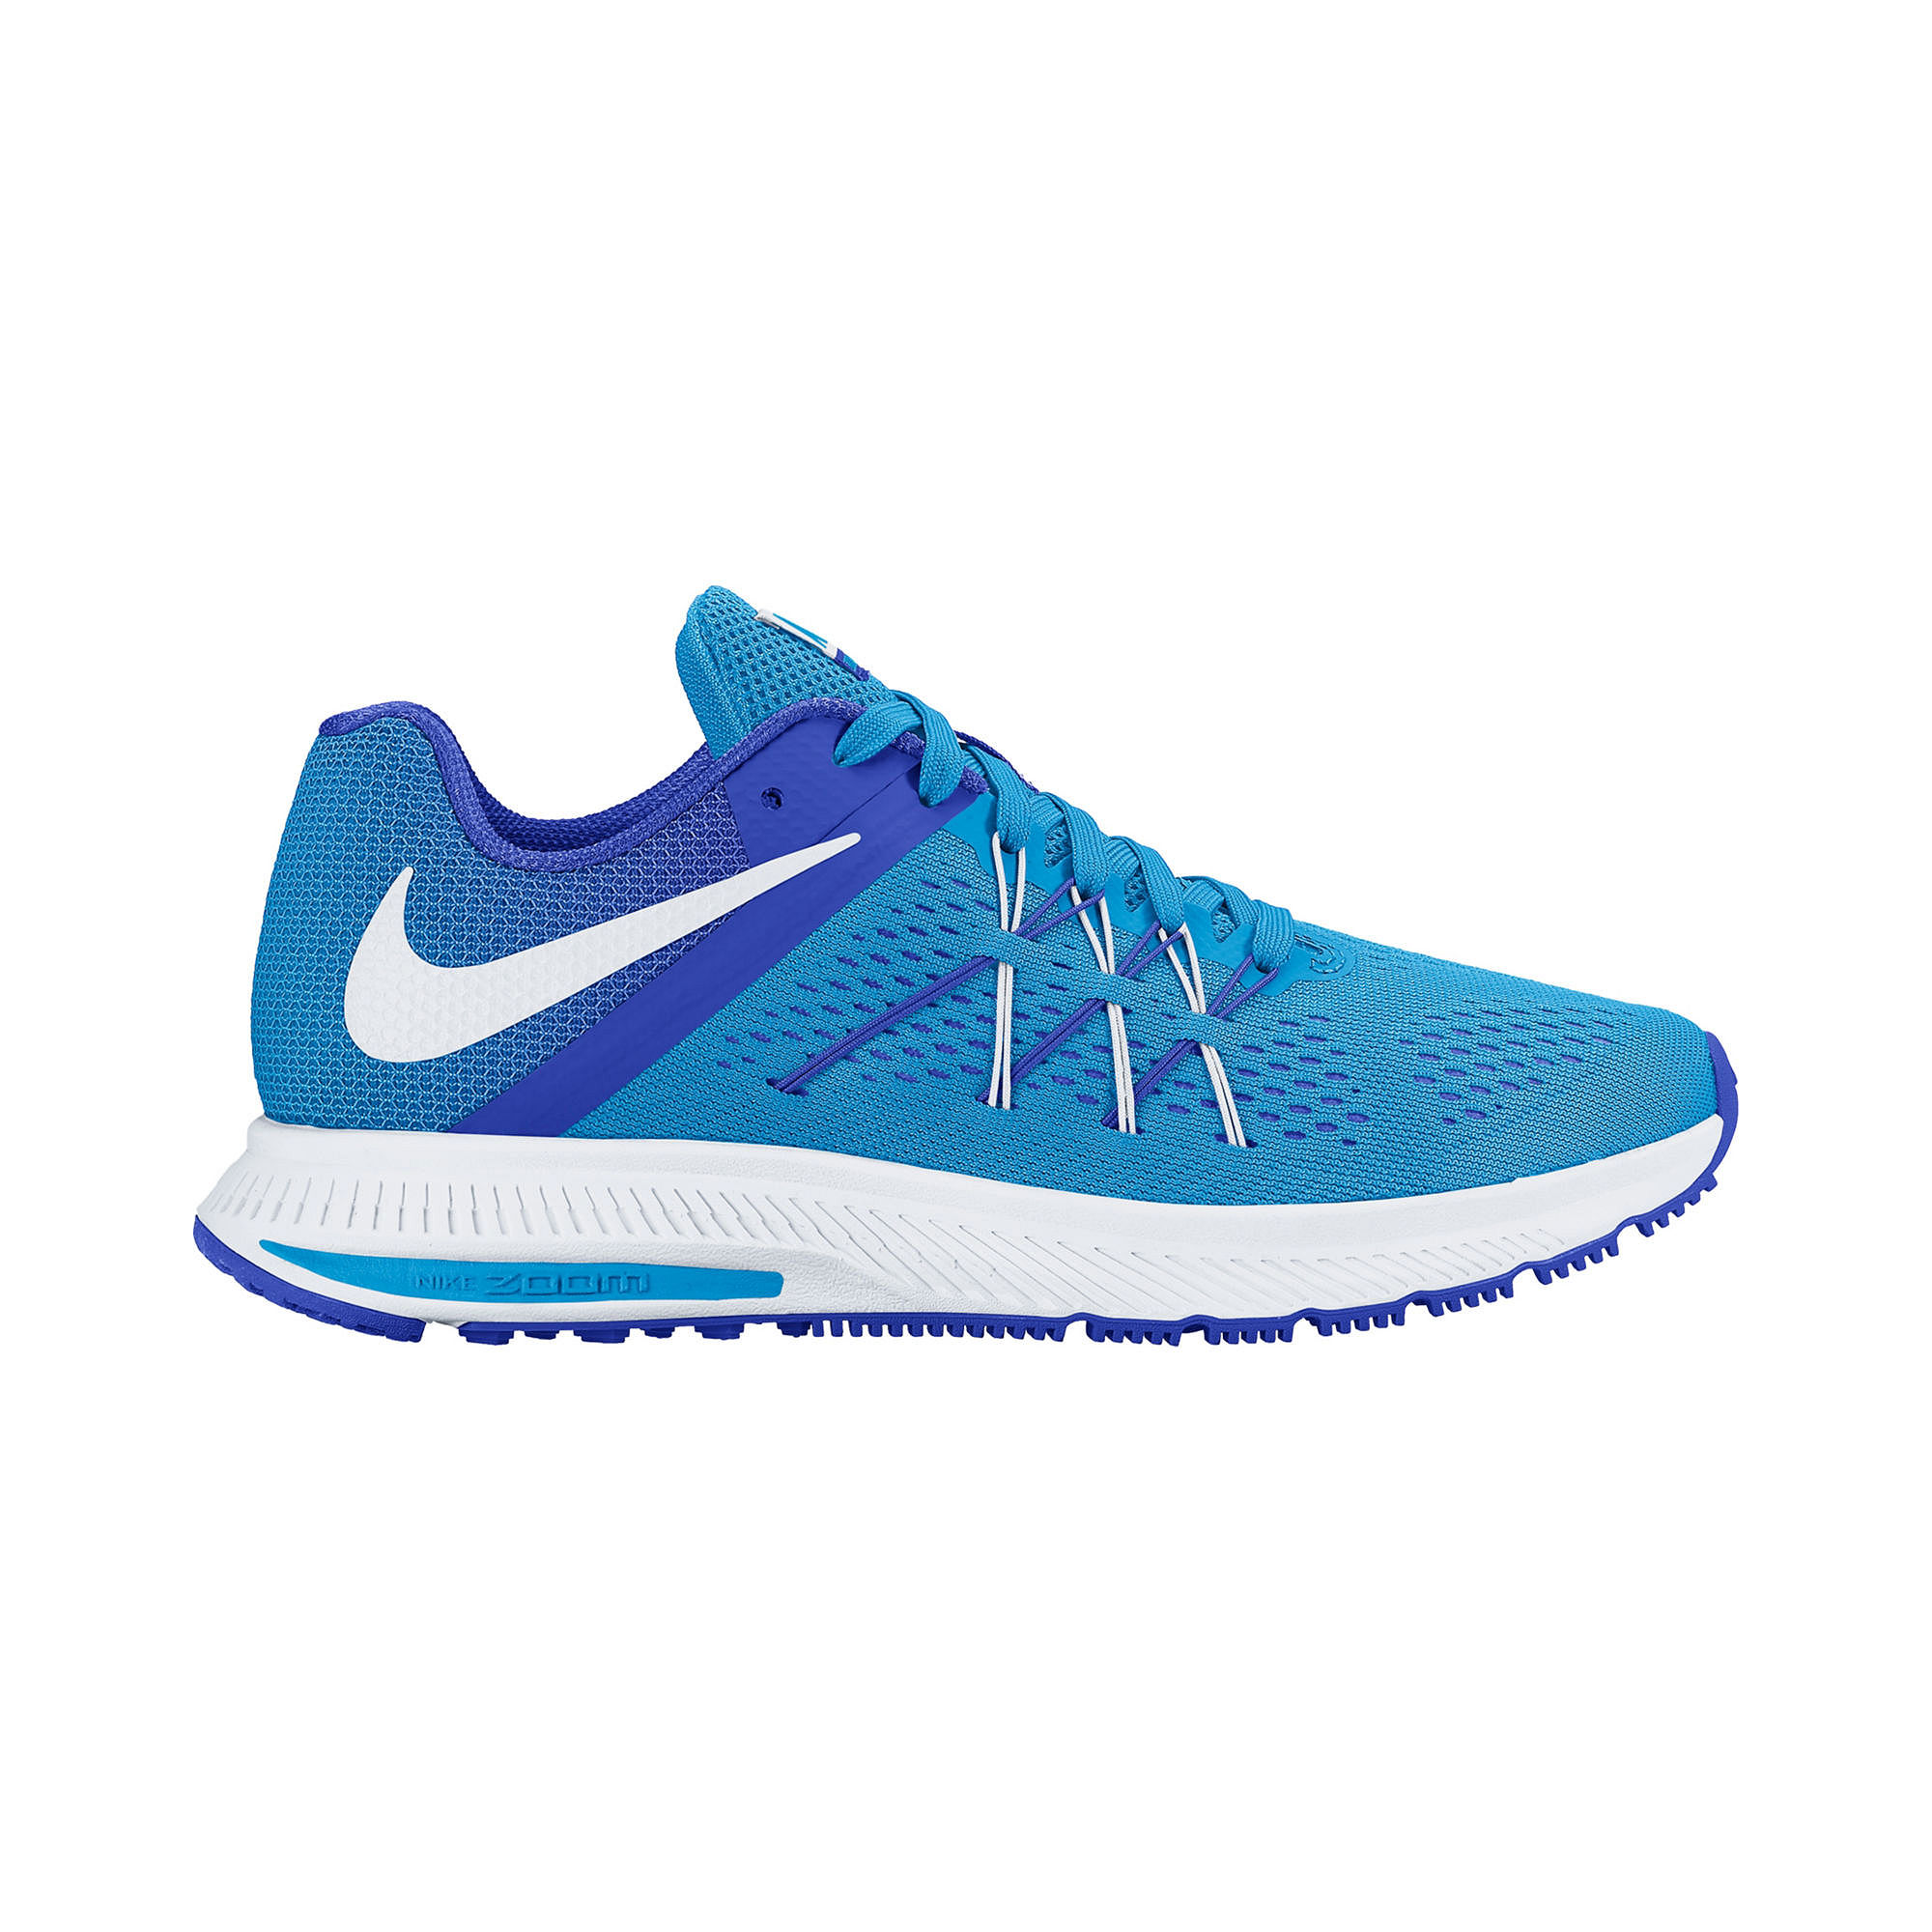 bcb5a10ed16 ... UPC 884751233517 product image for Nike Zoom Winflo 3 Womens Running  Shoes